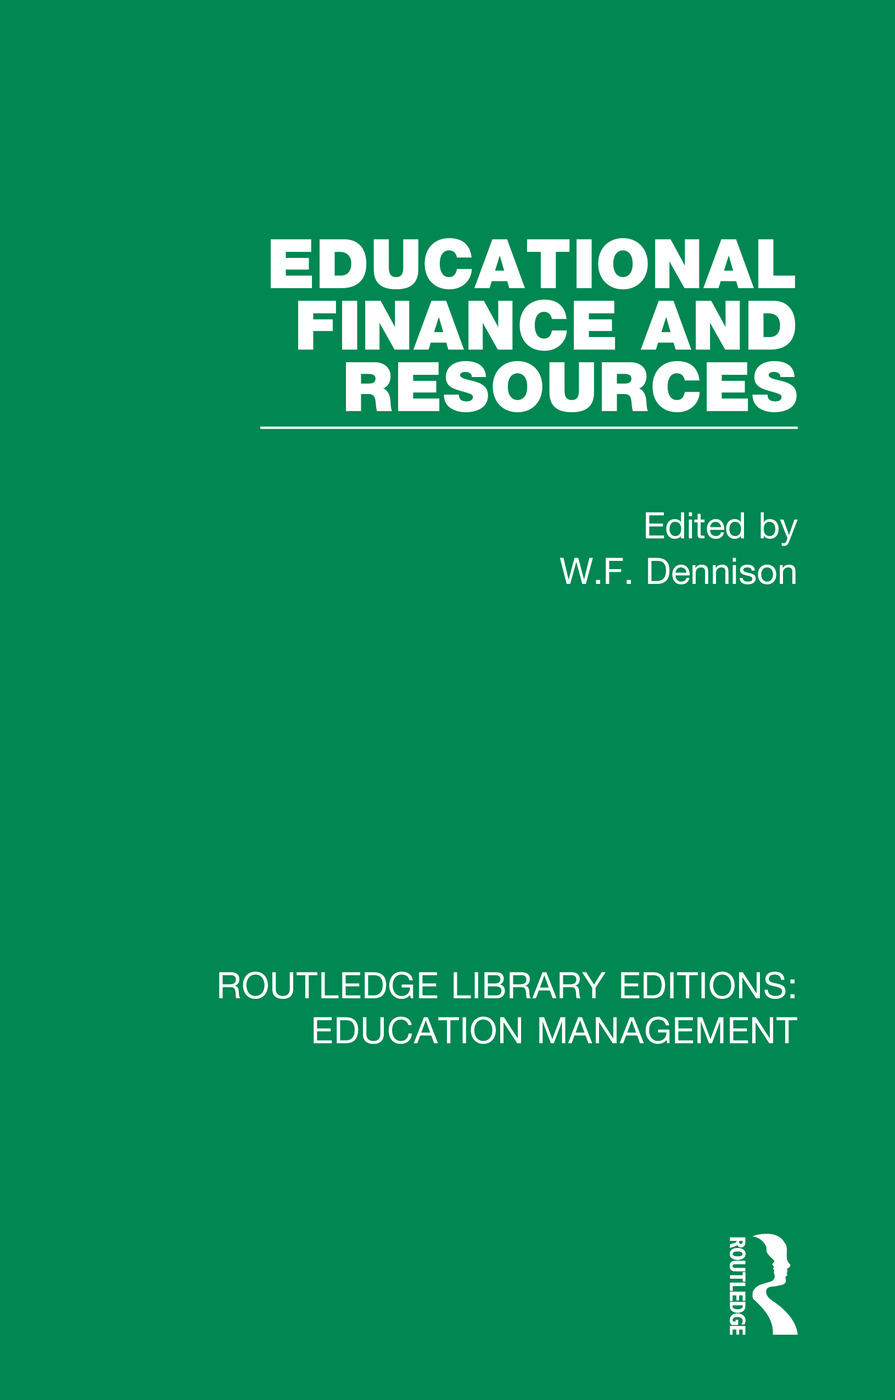 Educational Finance and Resources book cover